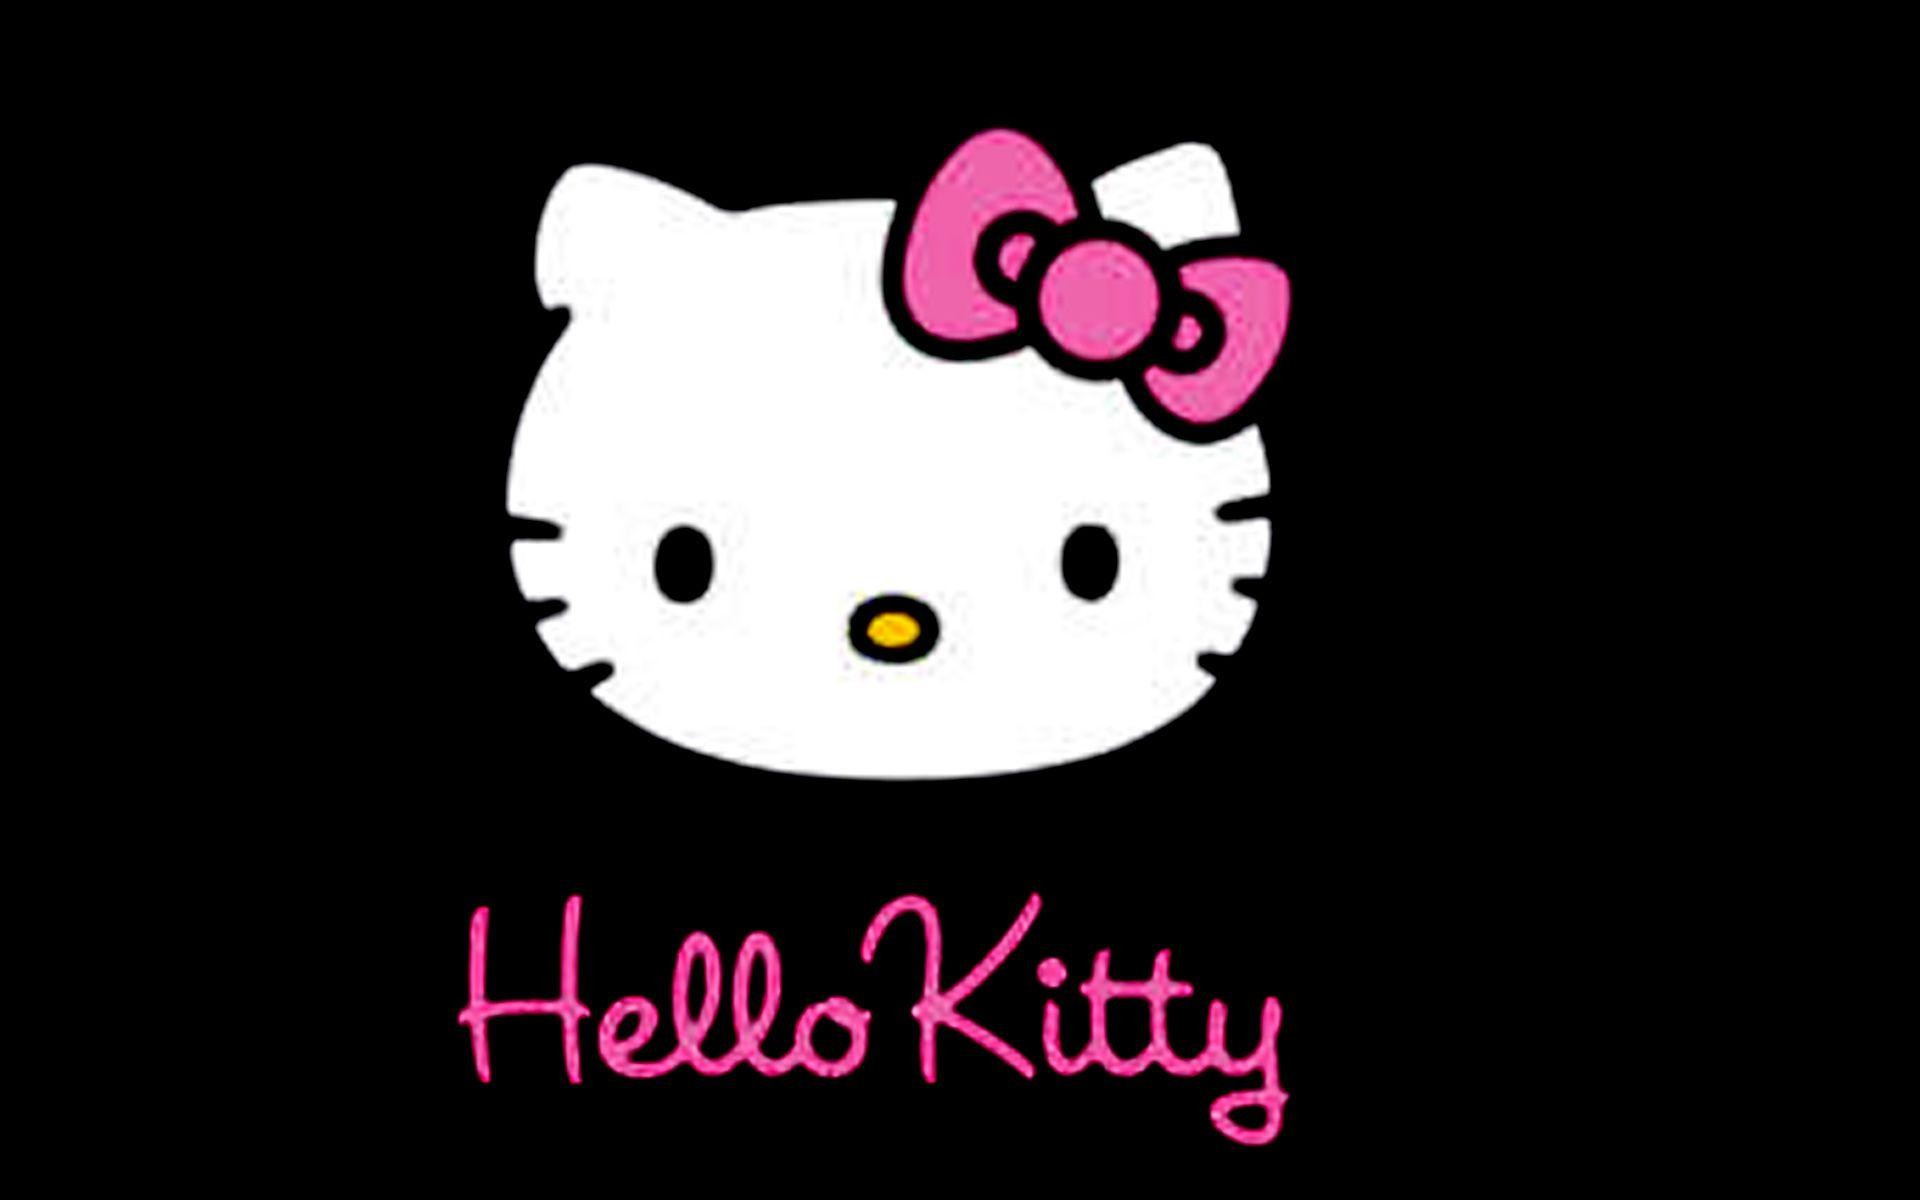 1920x1200 Hello Kitty Black Screensavers For Ios 7 | Cartoons Images